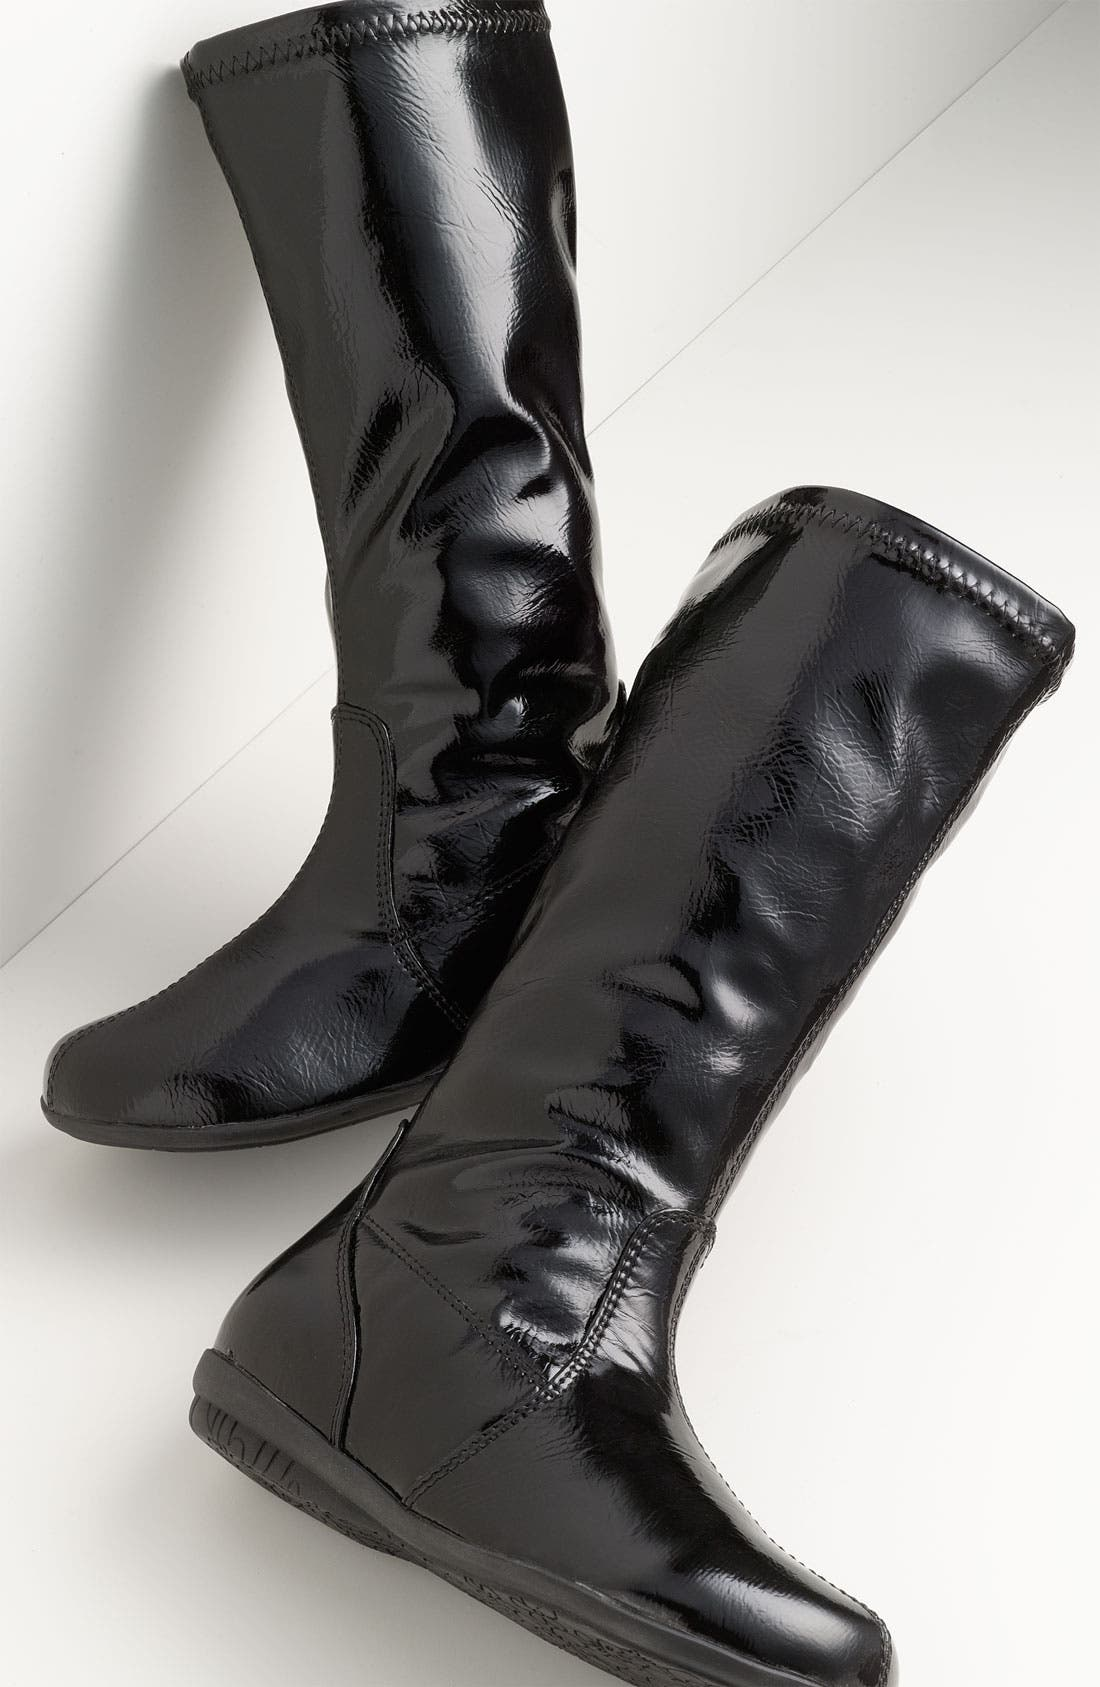 Alternate Image 1 Selected - Nordstrom 'Ravenna' Boot (Walker, Toddler, Little Kid & Big Kid)